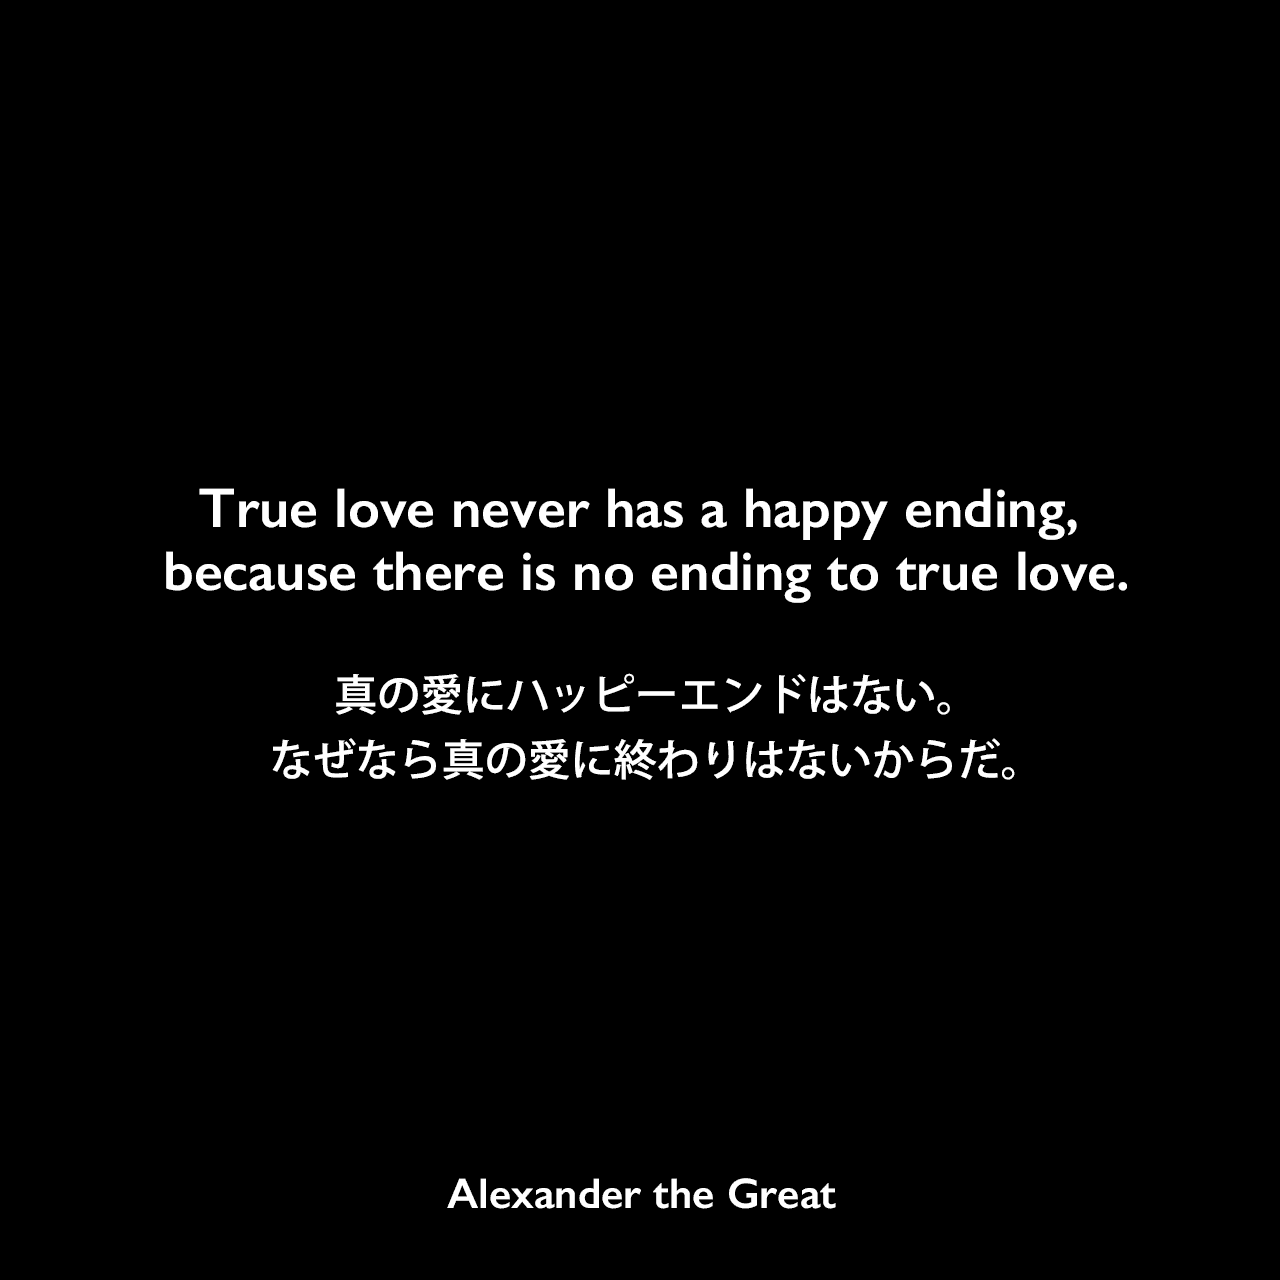 True love never has a happy ending, because there is no ending to true love.真の愛にハッピーエンドはない。なぜなら真の愛に終わりはないからだ。